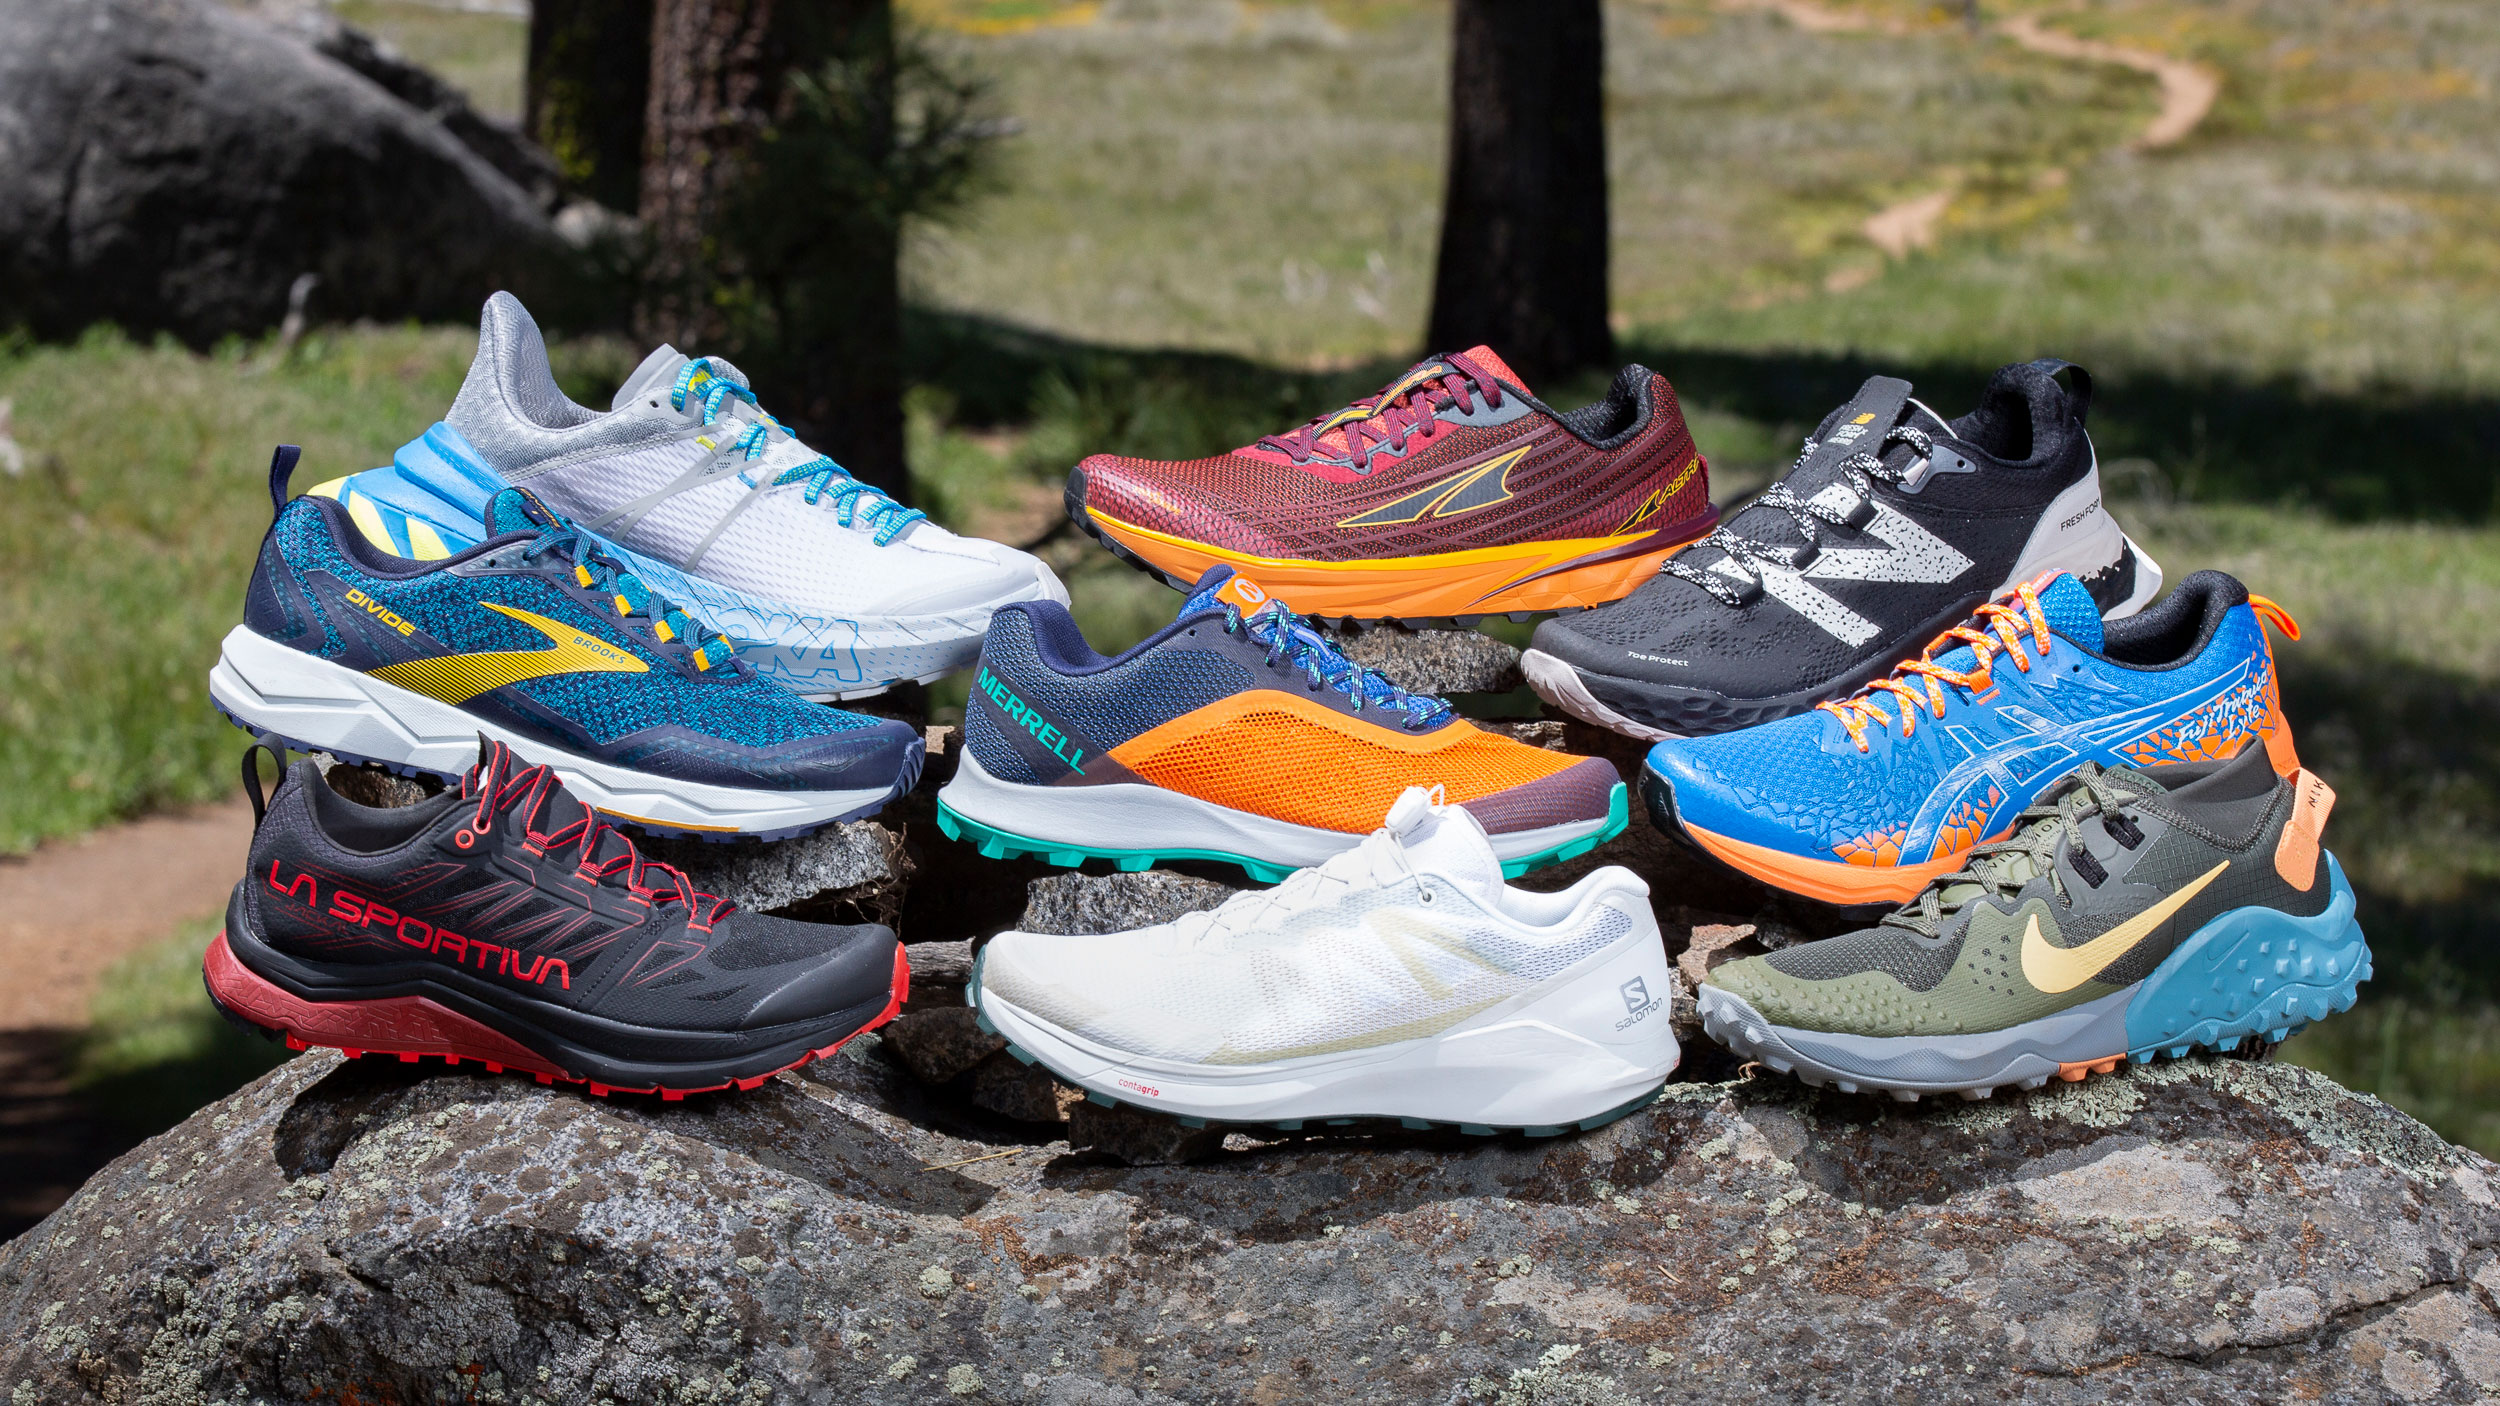 Trail Running Shoes for Summer